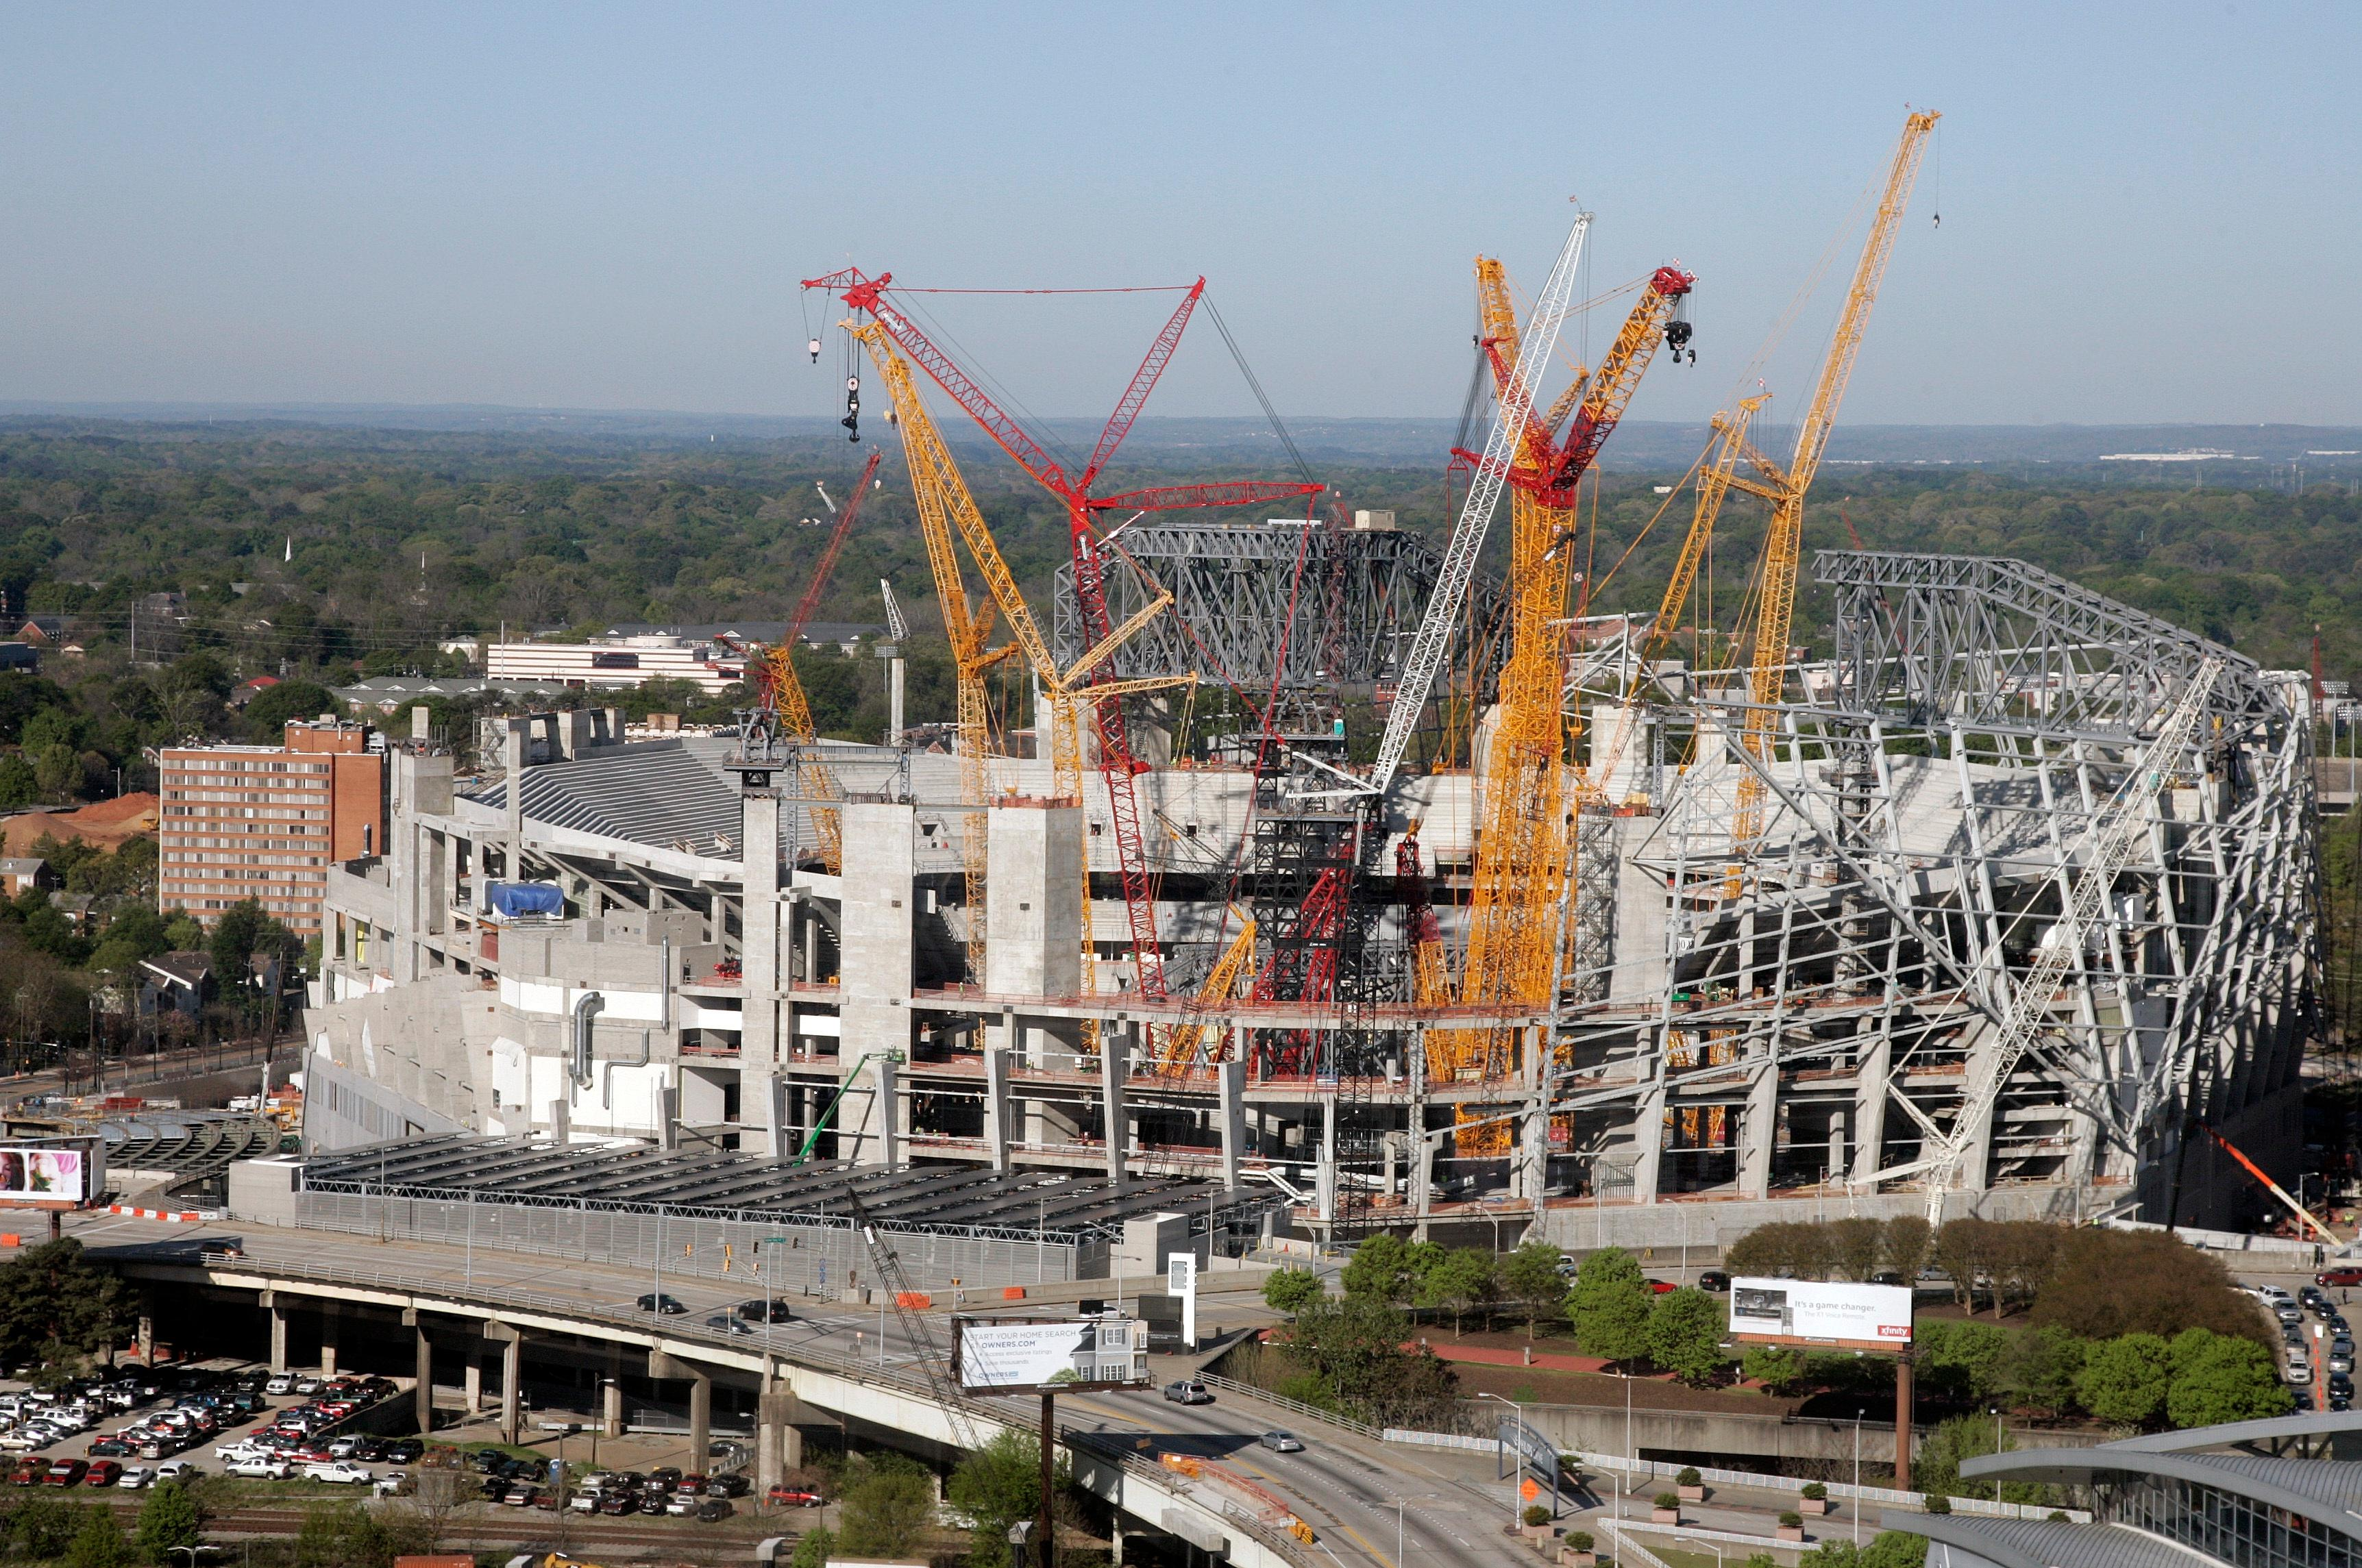 "In this April 5, 2016 photo, construction crews work on the the Mercedes-Benz stadium, in Atlanta. The new $1.5 million stadium is home to the National Football League's Atlanta Falcons and Major League Soccer's Atlanta United. It features a retractable roof; a 1,100-foot ""halo board"" video display; and a giant steel sculpture of a Falcon with its 70-foot wingspan at one of the main entrances. (AP Photo/John Bazemore)"